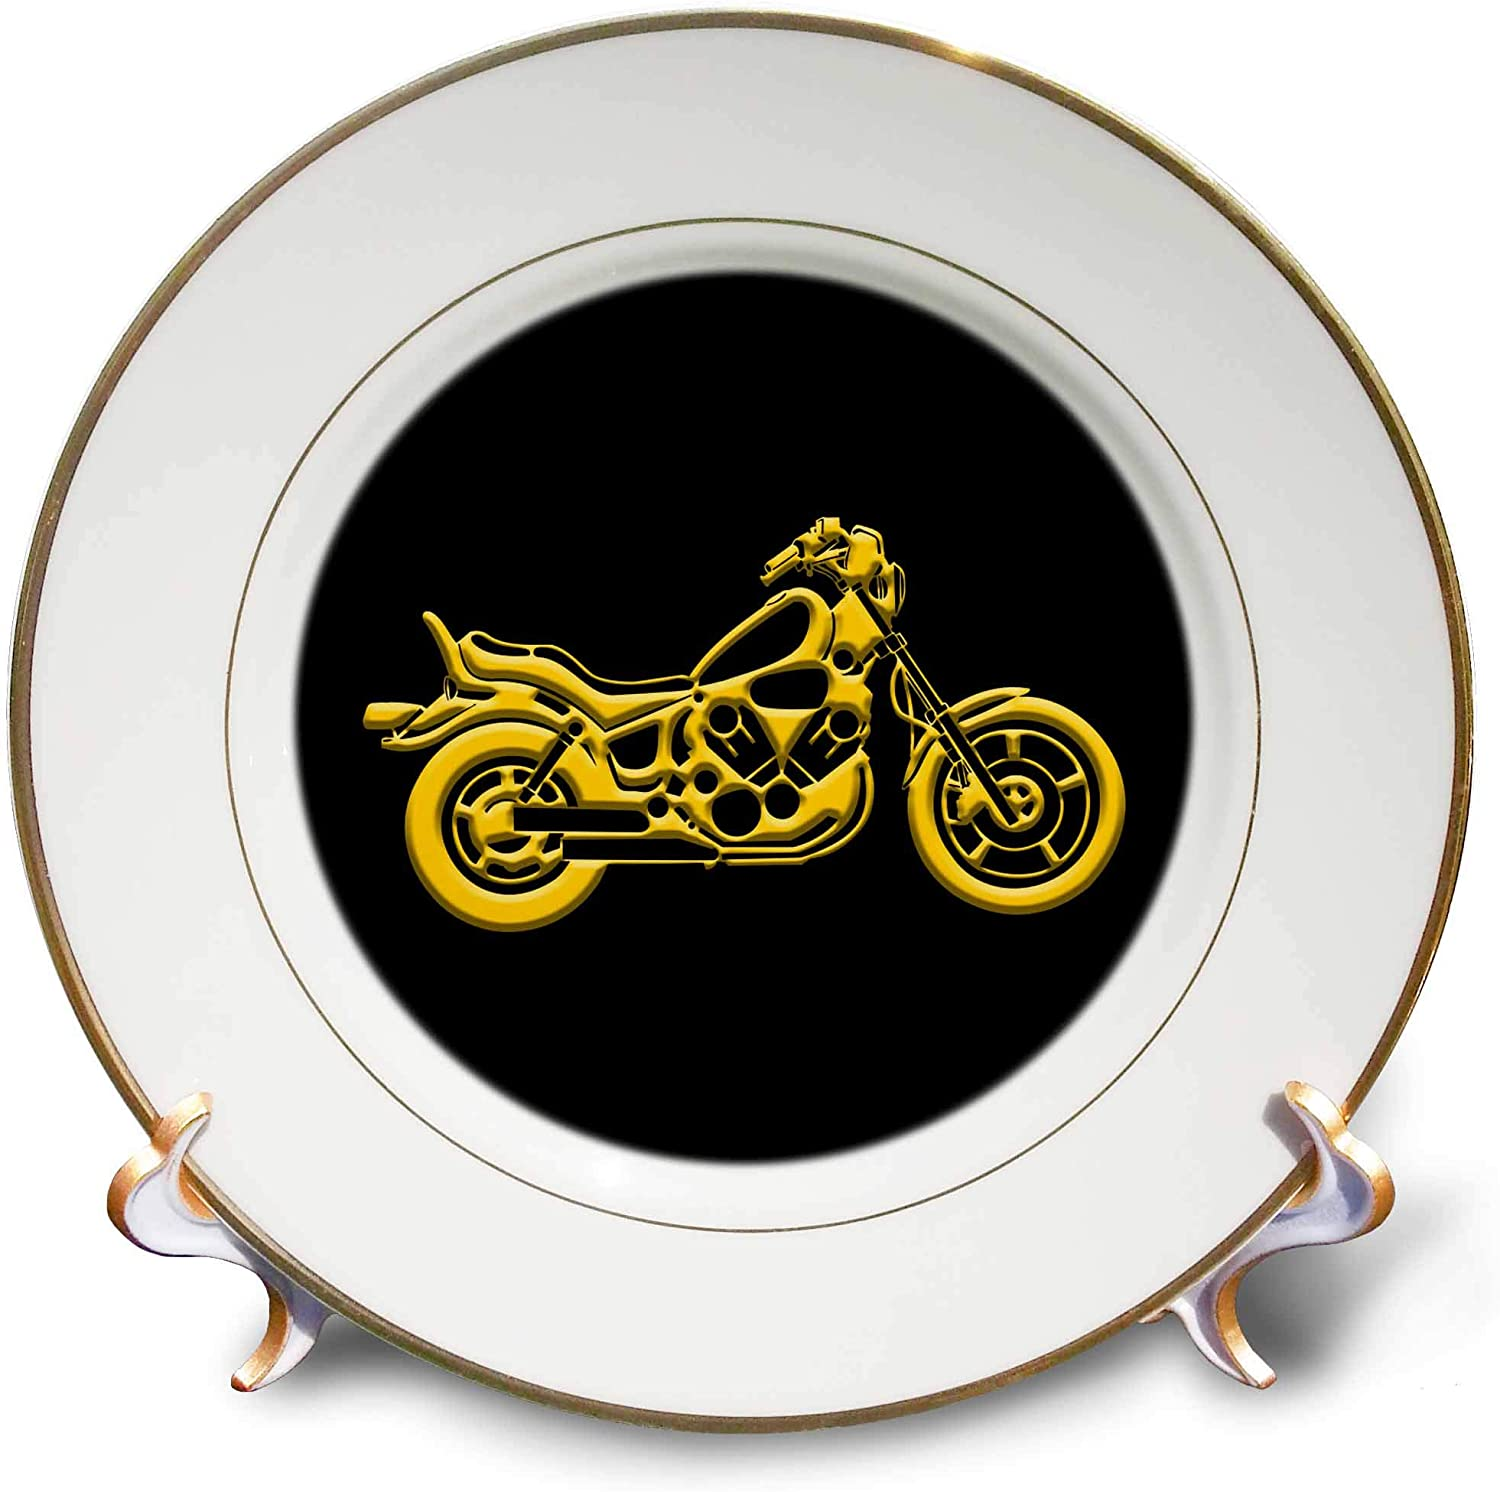 3dRose Alexis Design - Transport Motorcycles - Detailed Silhouette of a Motor Bike. Yellow on Black. Positive Gift - 8 inch Porcelain Plate (cp_324604_1)